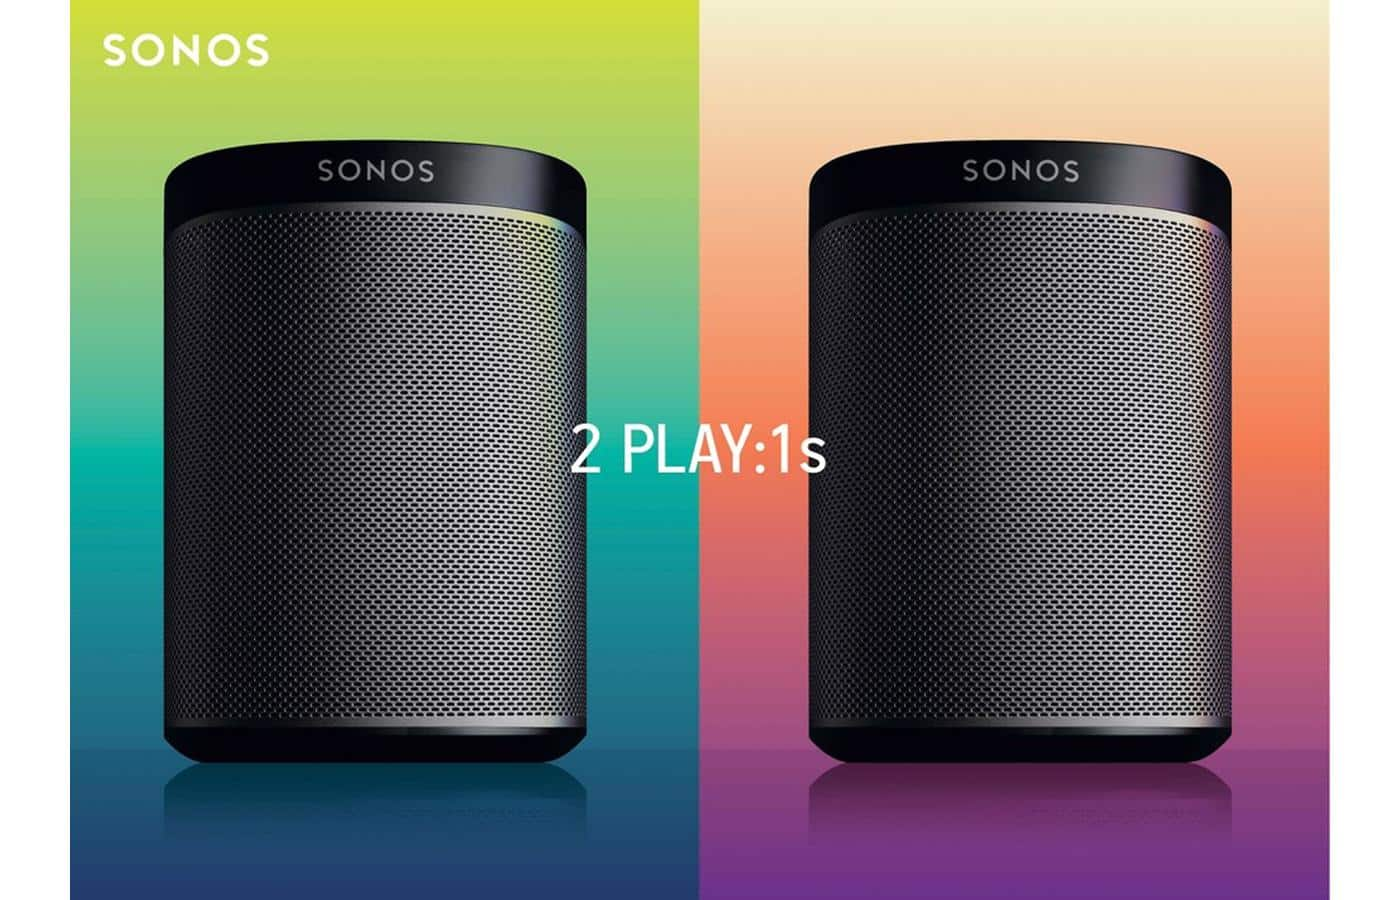 Sonos PLAY:1 Starter kit (2 PLAY:1 wireless powered speakers) - 349$ + no tax (except VA) + FS